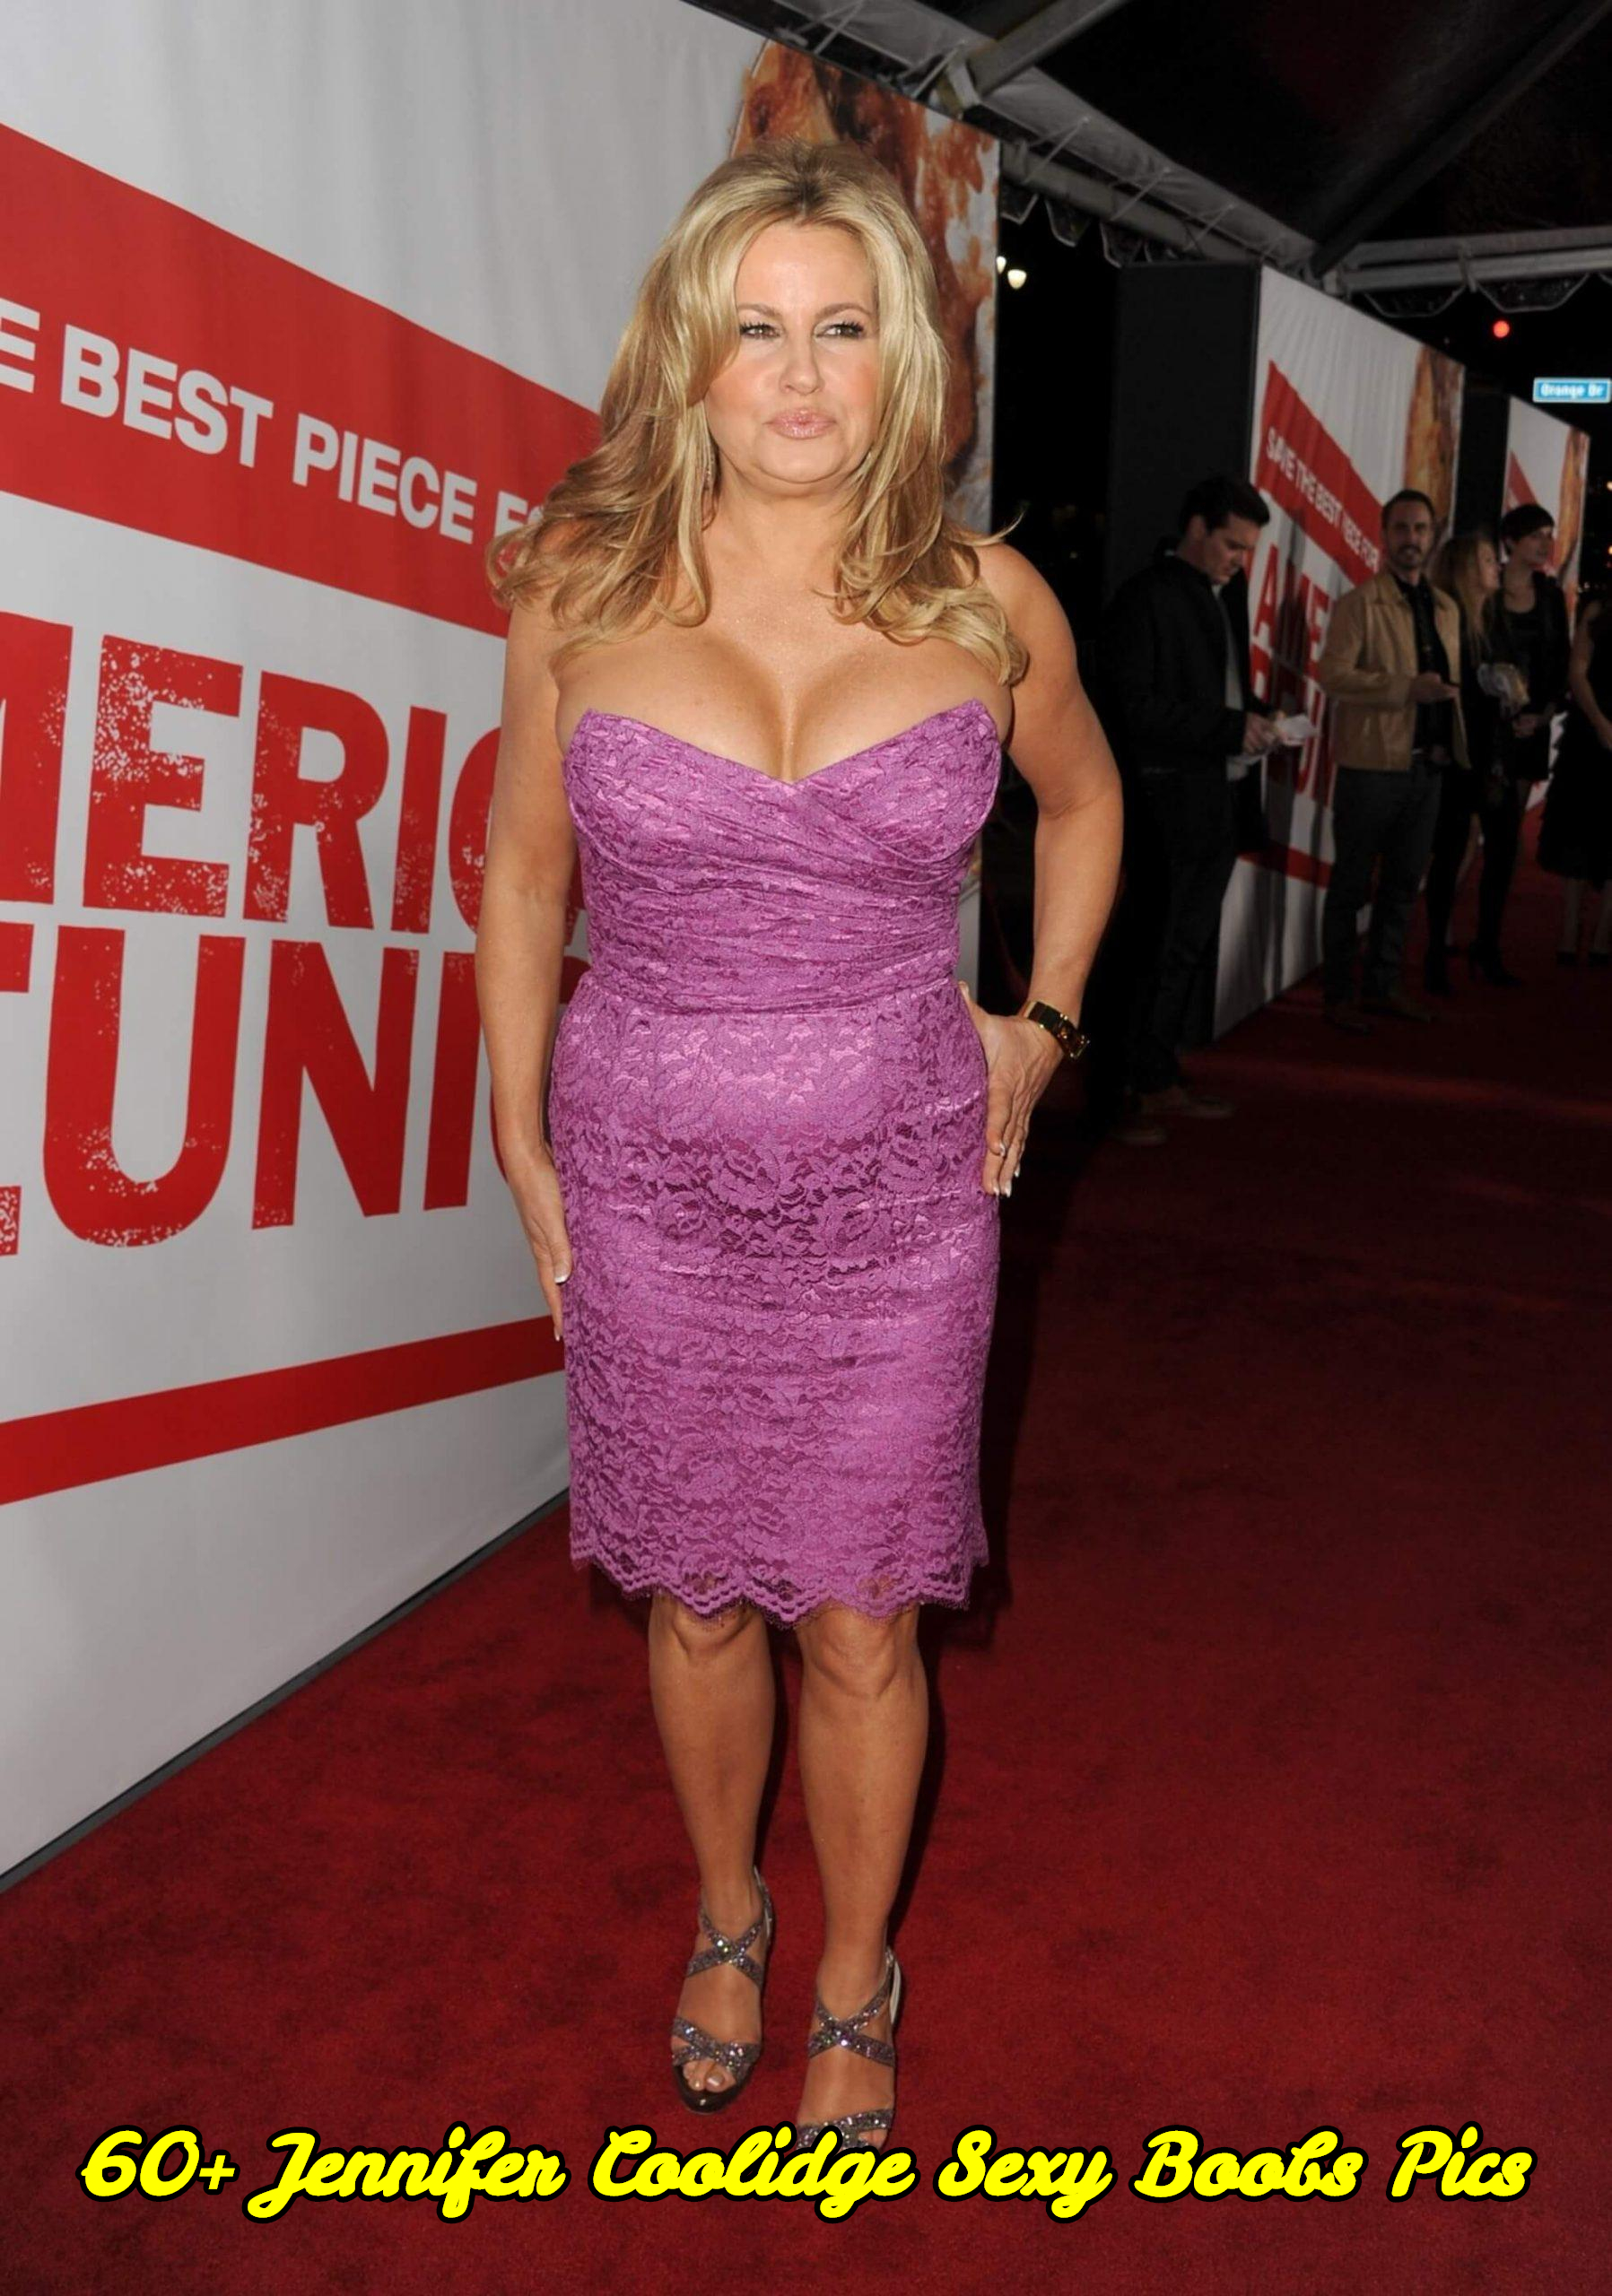 Jennifer Coolidge sexy boobs pics